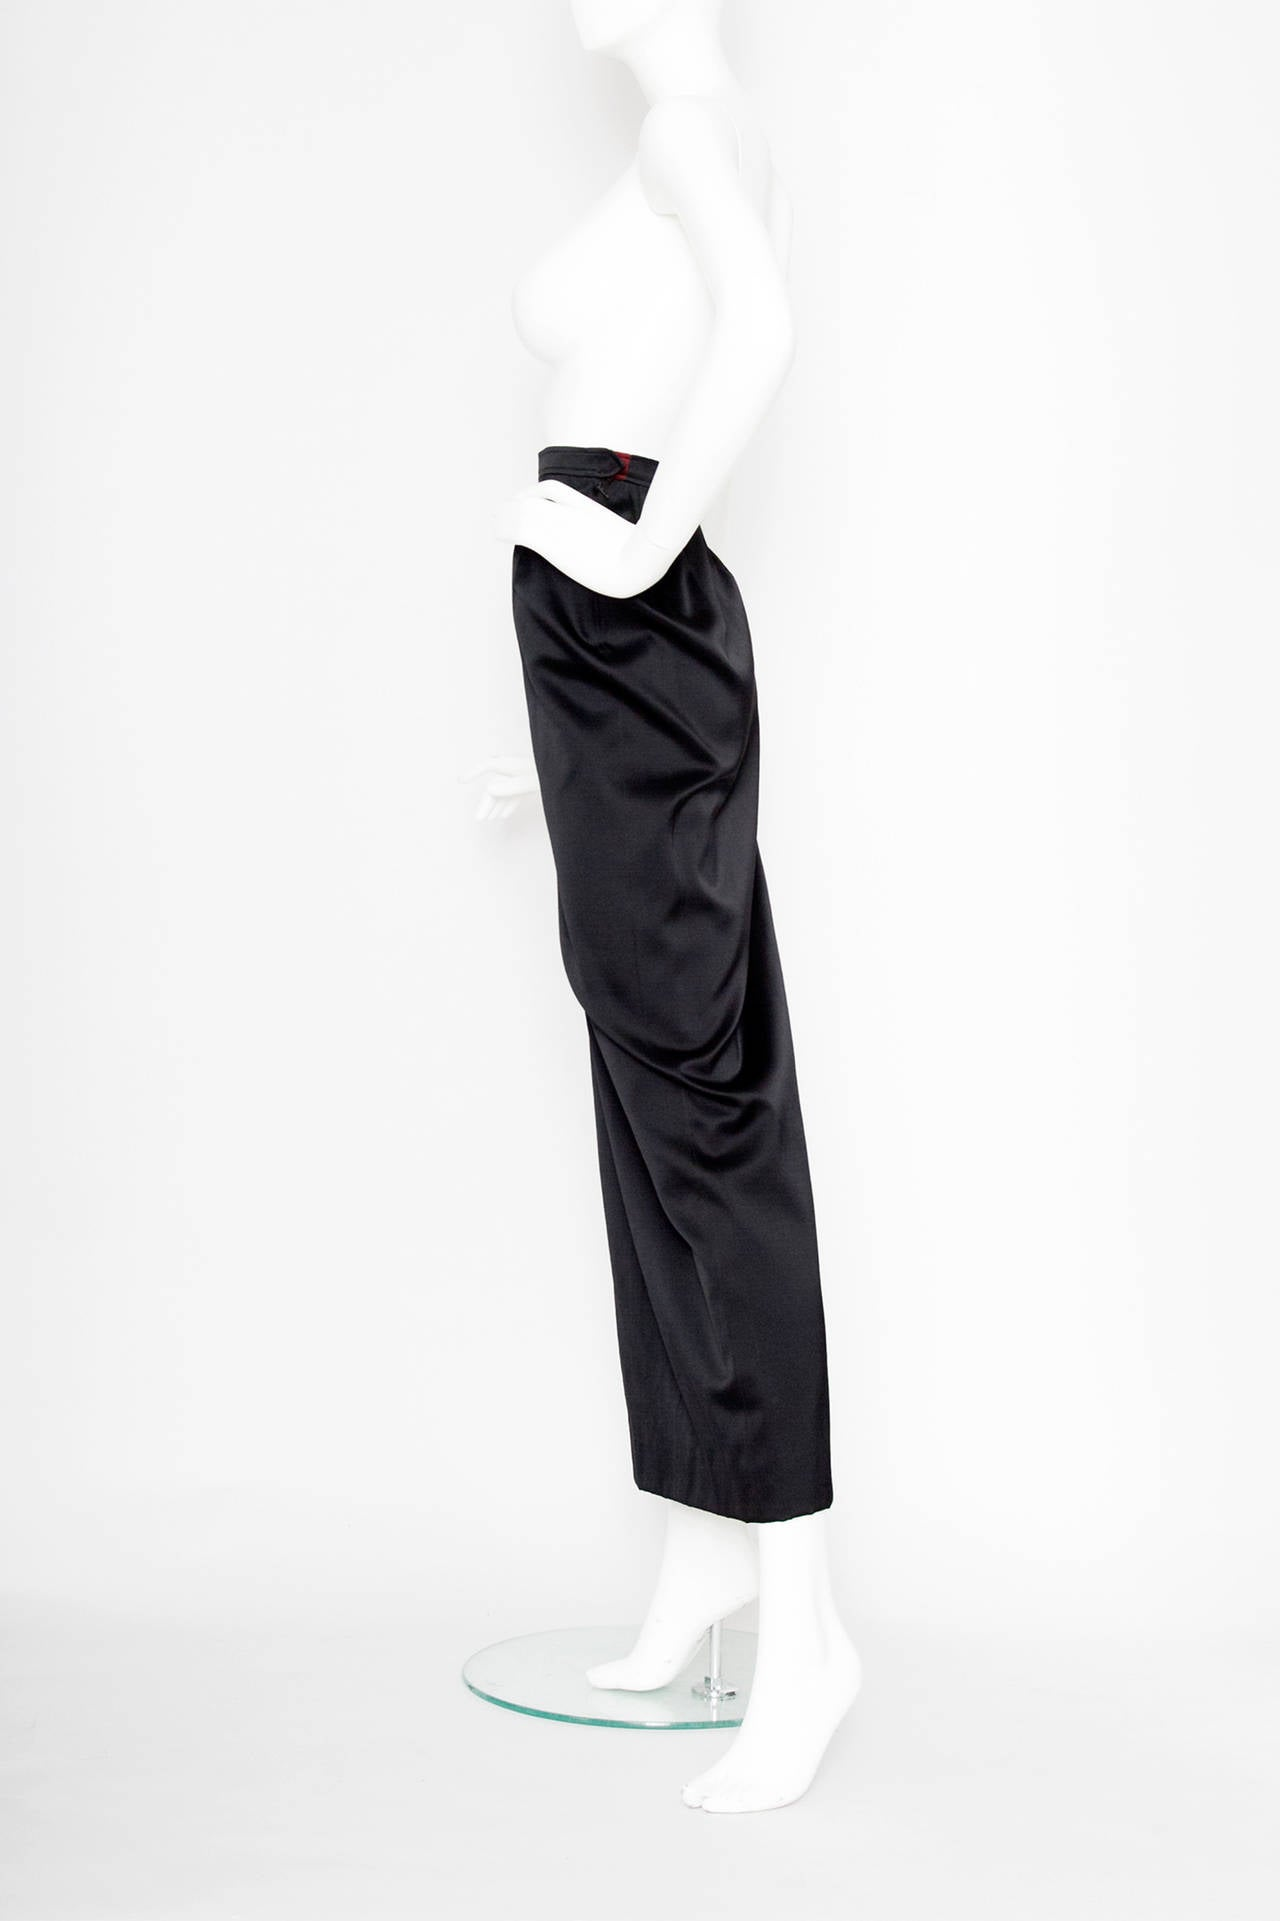 A sleek 1990s floor-length Yves Saint Laurent black silk satin skirt with a thigh high slit measuring 45 cm in the side. The skirt has a side zipper, a hook & eye and a single push button closure, concluded with a bordeaux insert in the trim.